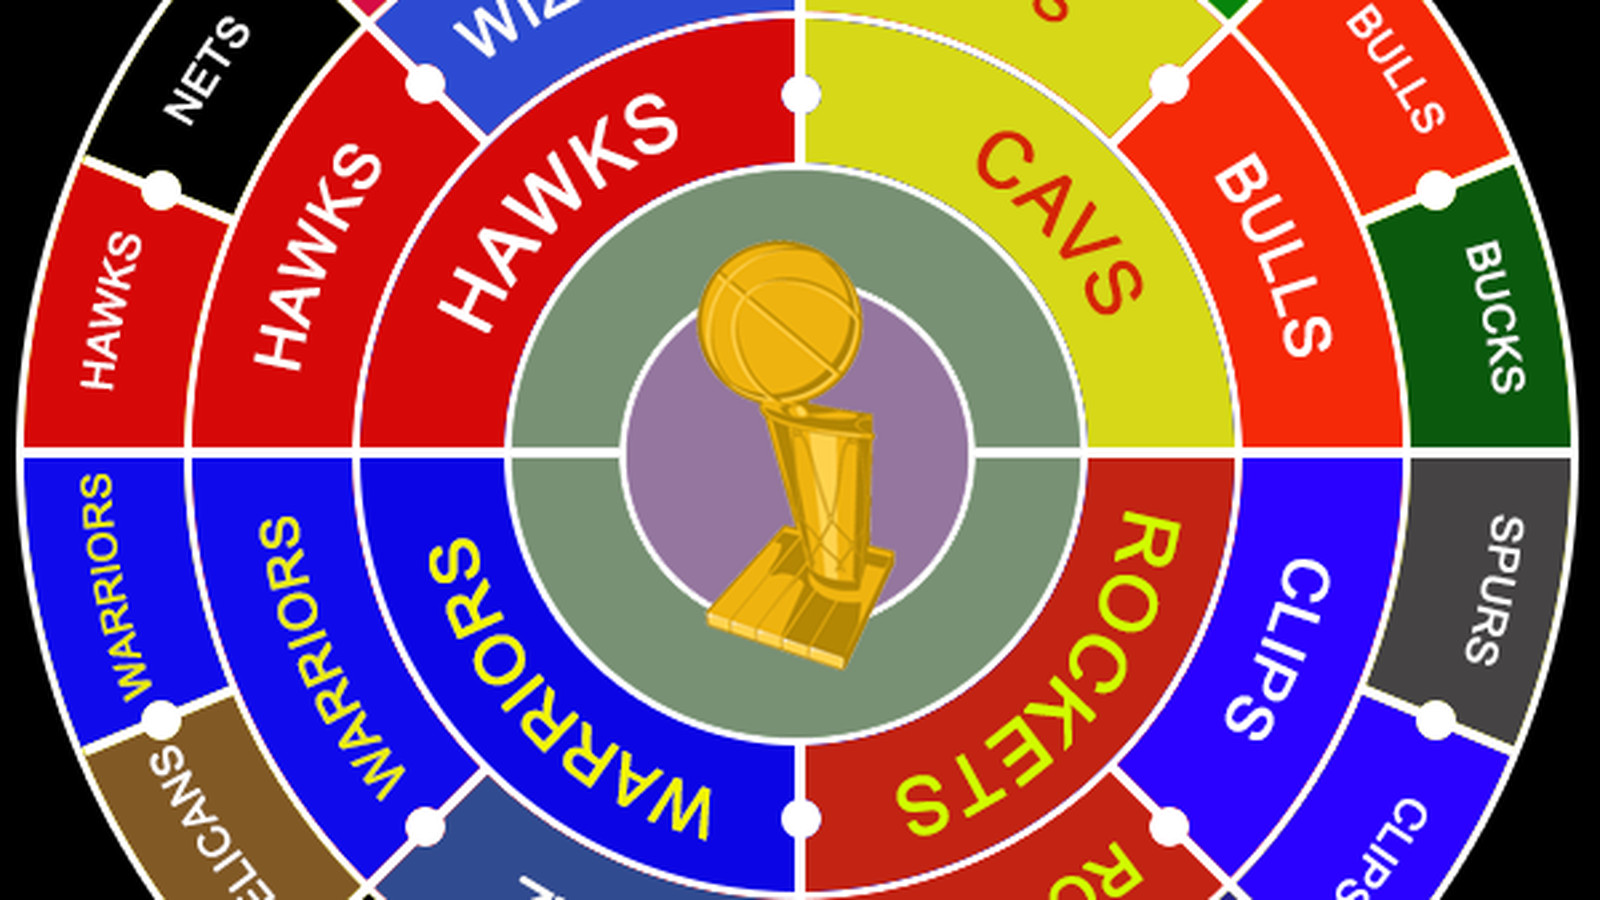 Only 4 teams left in the 2015 NBA Playoffs radial bracket ...